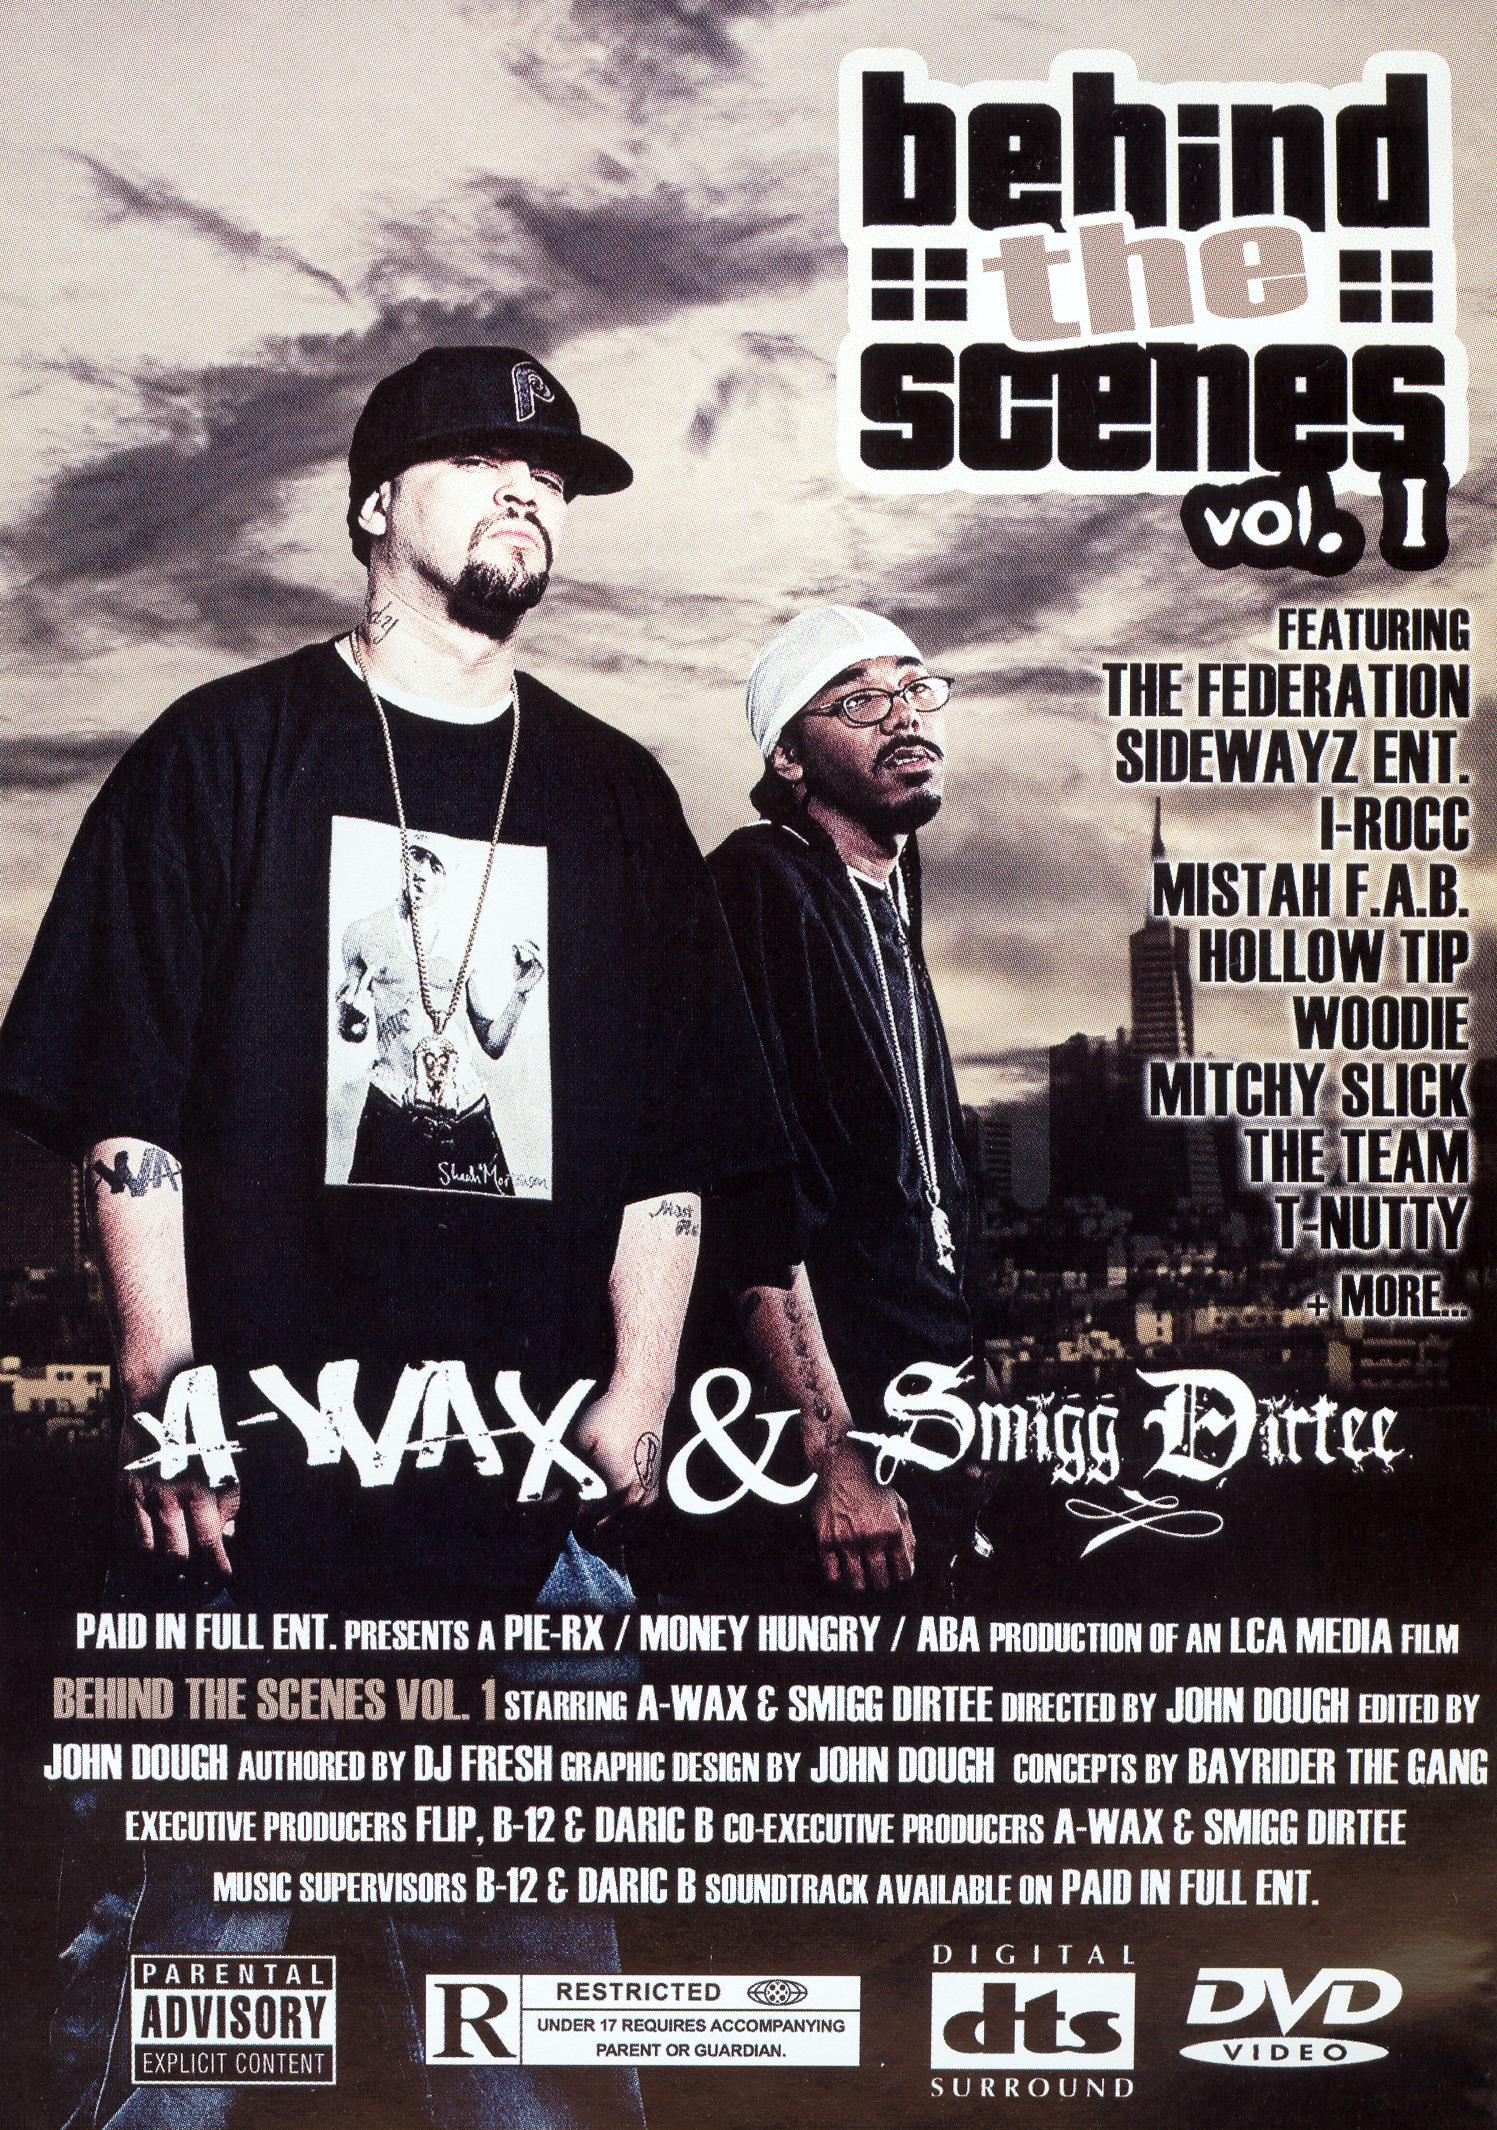 A-Wax and Smigg Dirtee: Behind the Scenes, Vol. 1